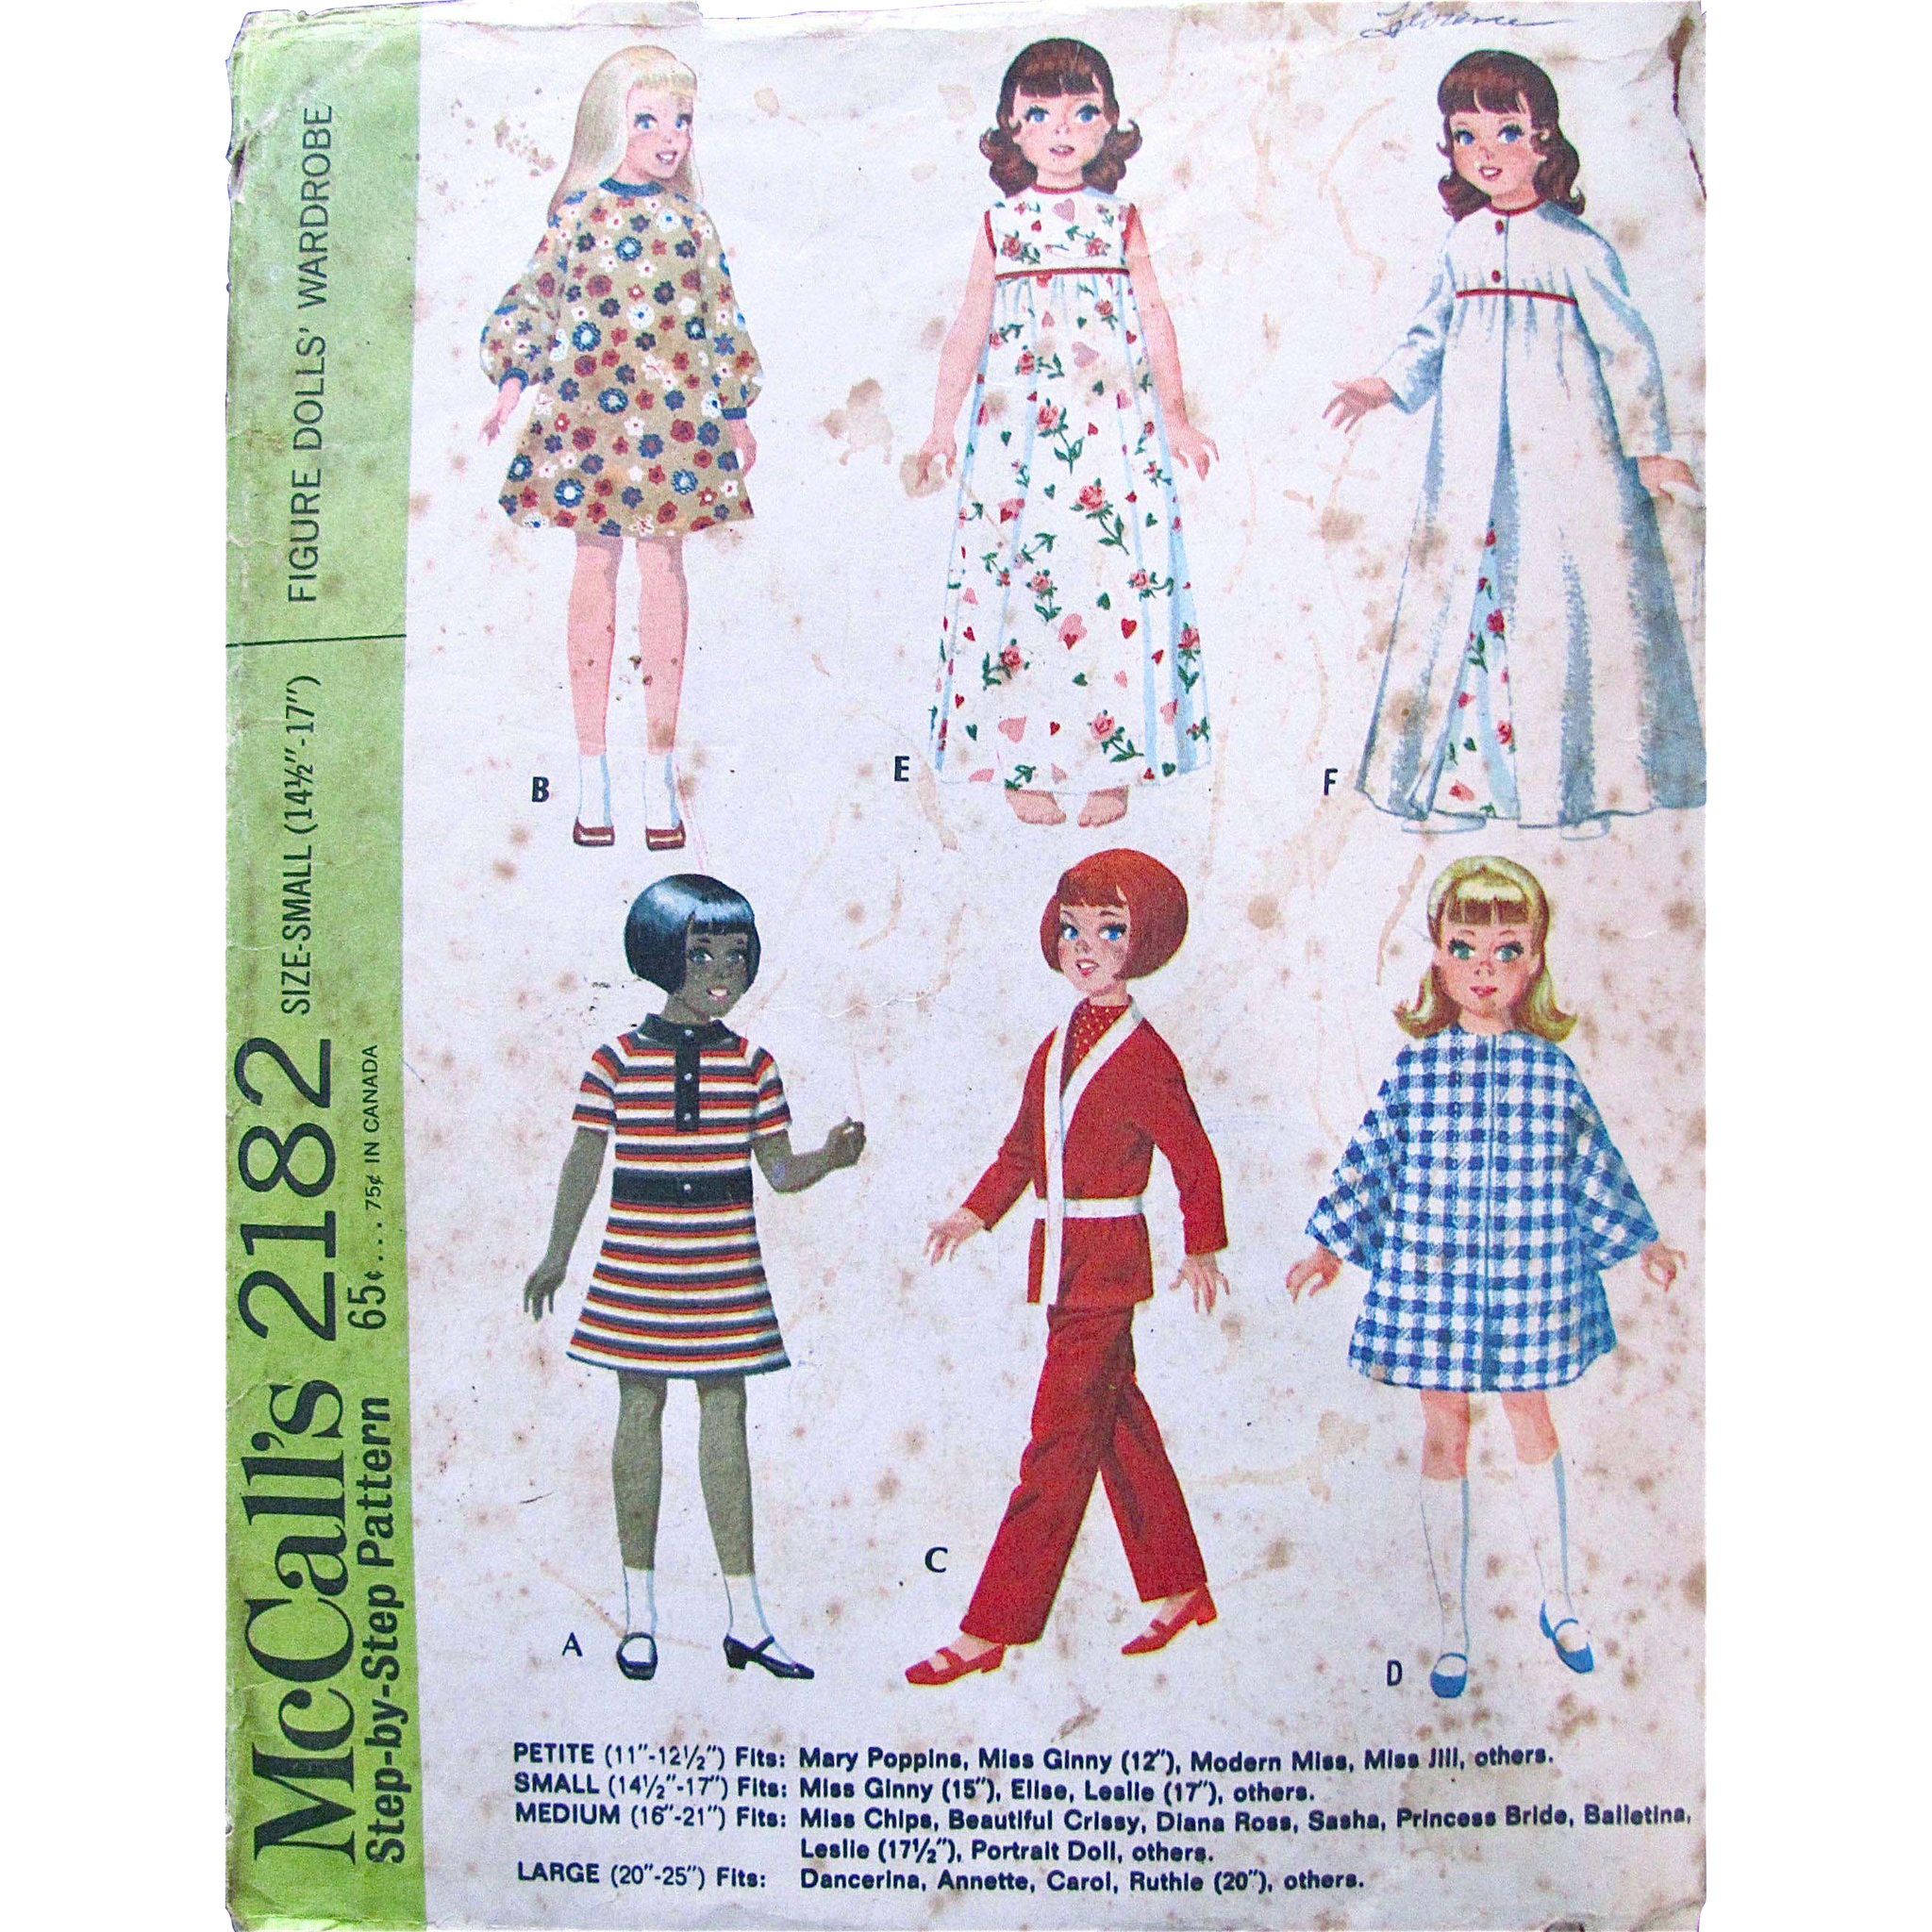 Elise Figure Dolls Wardrobe Pattern, McCall's 2182, Vintage 1969, Complete, Size Small Fits 14-1/2 to 17 Inch Figure Dolls, Miss Ginny, Leslie